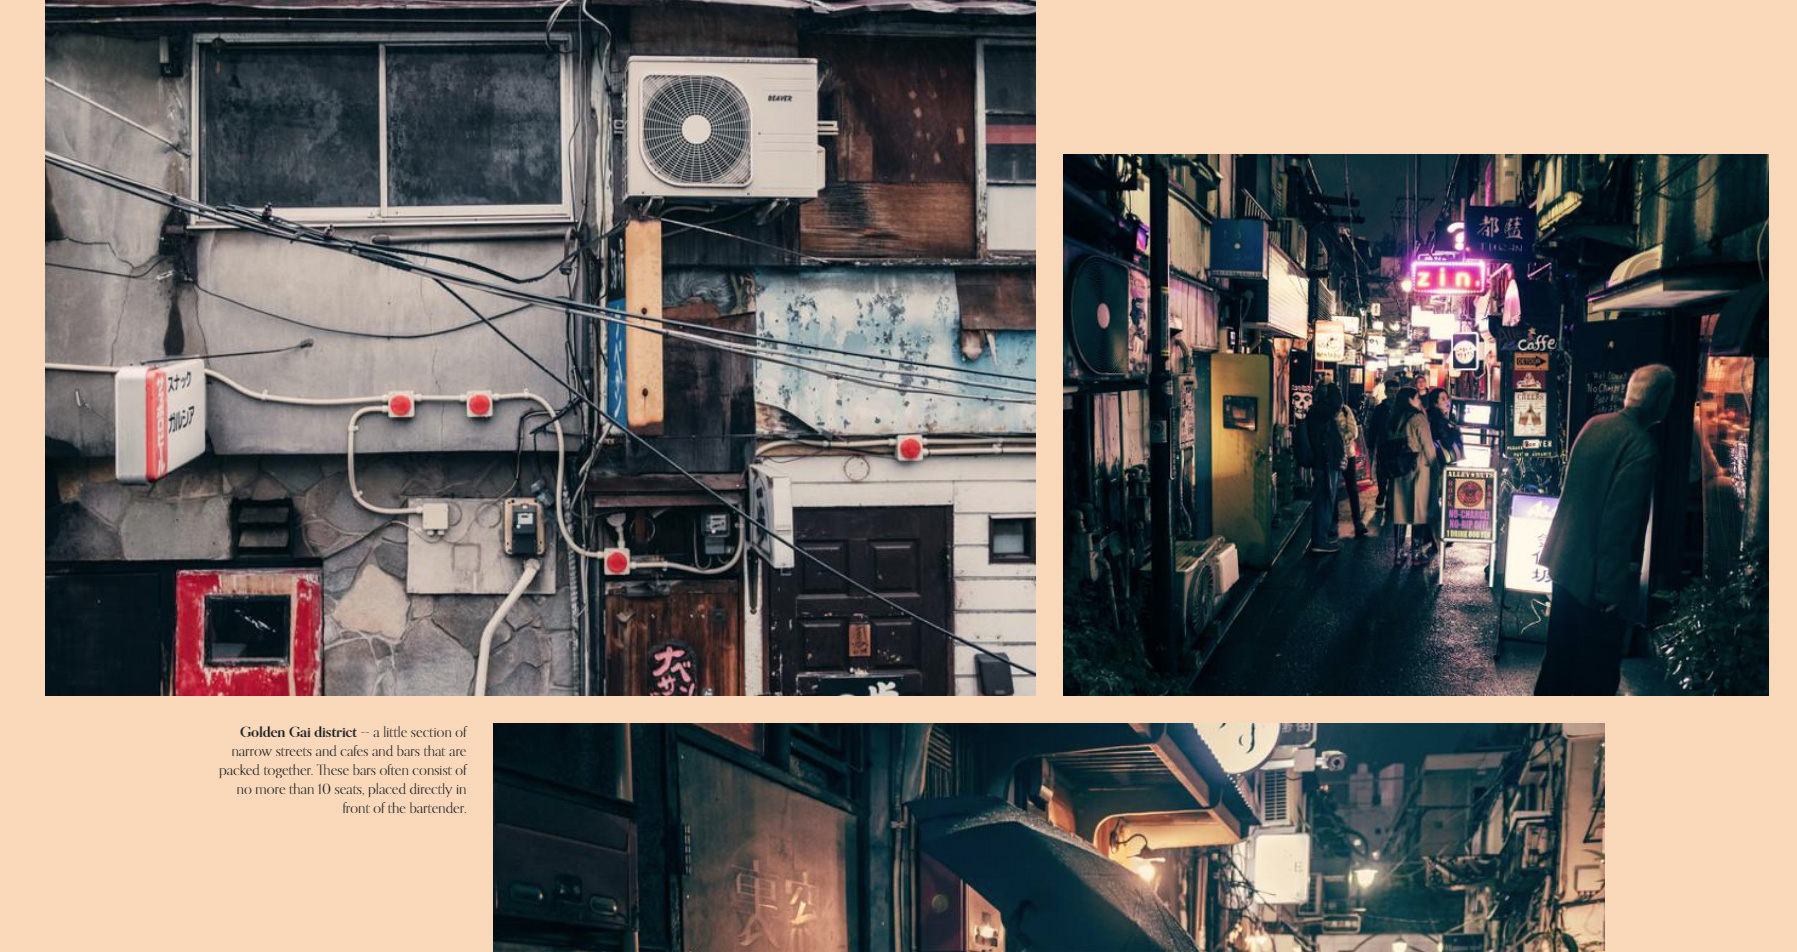 Monokai: a trip through Japan - Website of the Day